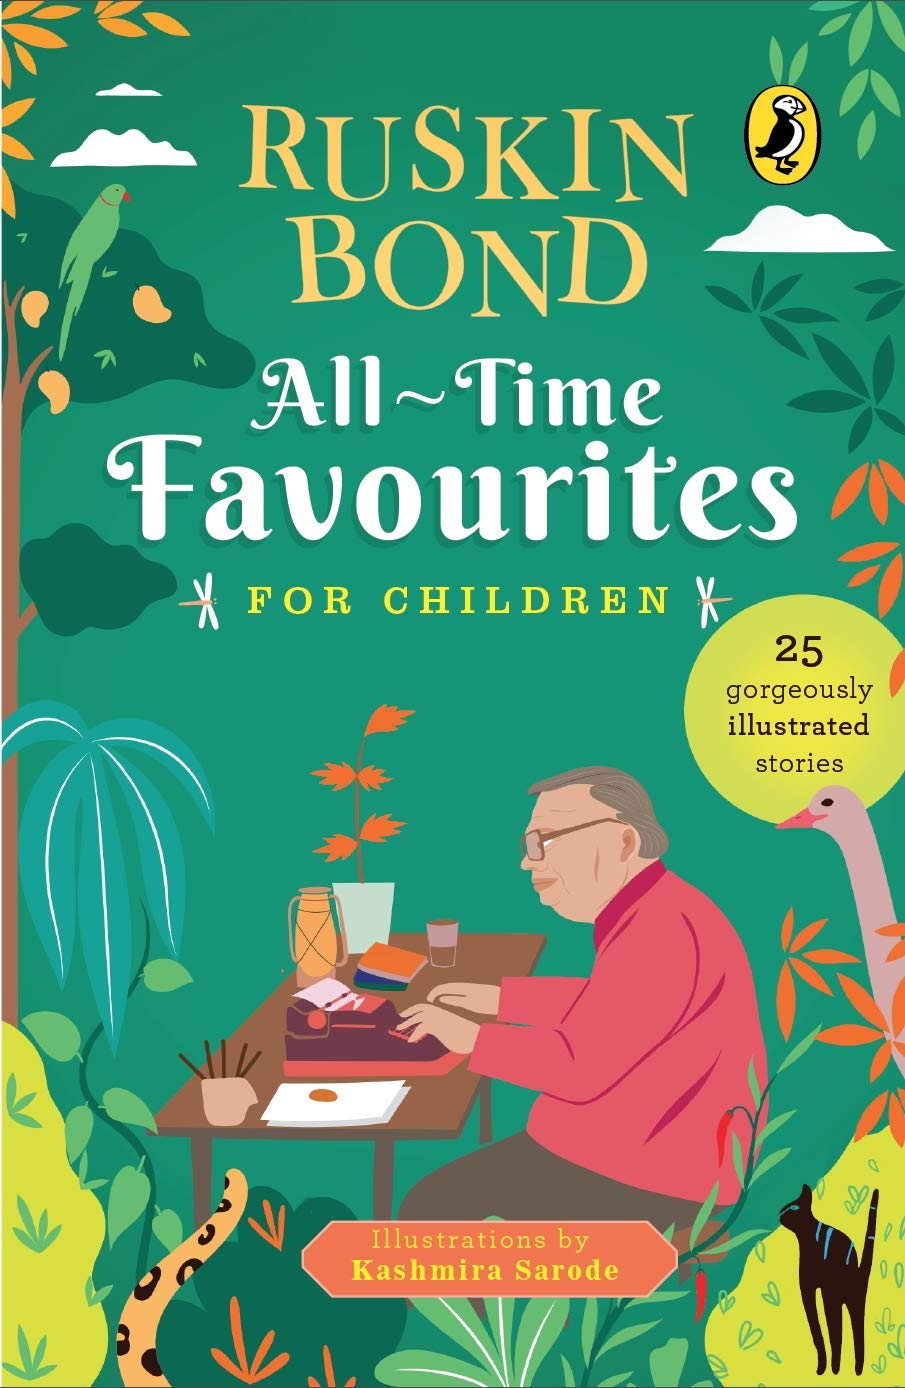 All-Time Favourites for Children: Classic Collection of 25+ most-loved, great stories by famous award-winning author (Illustrated, must-read fiction short stories for kids)